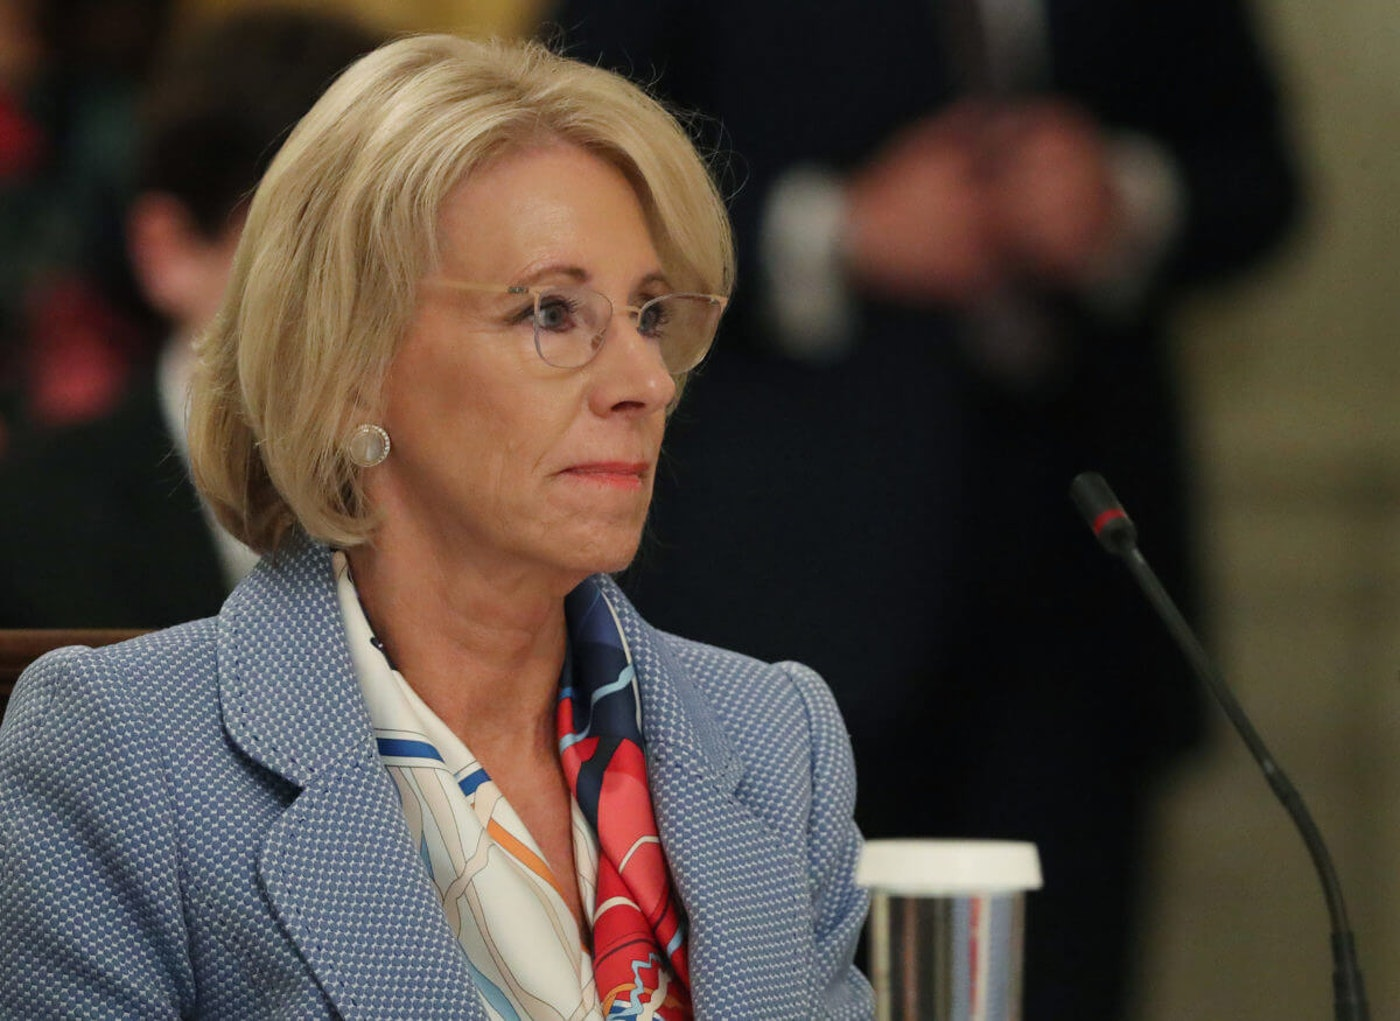 WASHINGTON, DC - JULY 07: Education Secretary Betsy DeVos participates in an event hosted by U.S. President Donald Trump with students, teachers and administrators about how to safely re-open schools during the novel coronavirus pandemic in the East Room at the White House July 07, 2020 in Washington, DC. As the number of COVID-19 cases surge across southern states like Florida, Texas, Louisiana, South Carolina and Arizona, Trump joined with guests from across the country to discuss how to responsibly return to the classroom. (Photo by Chip Somodevilla/Getty Images)